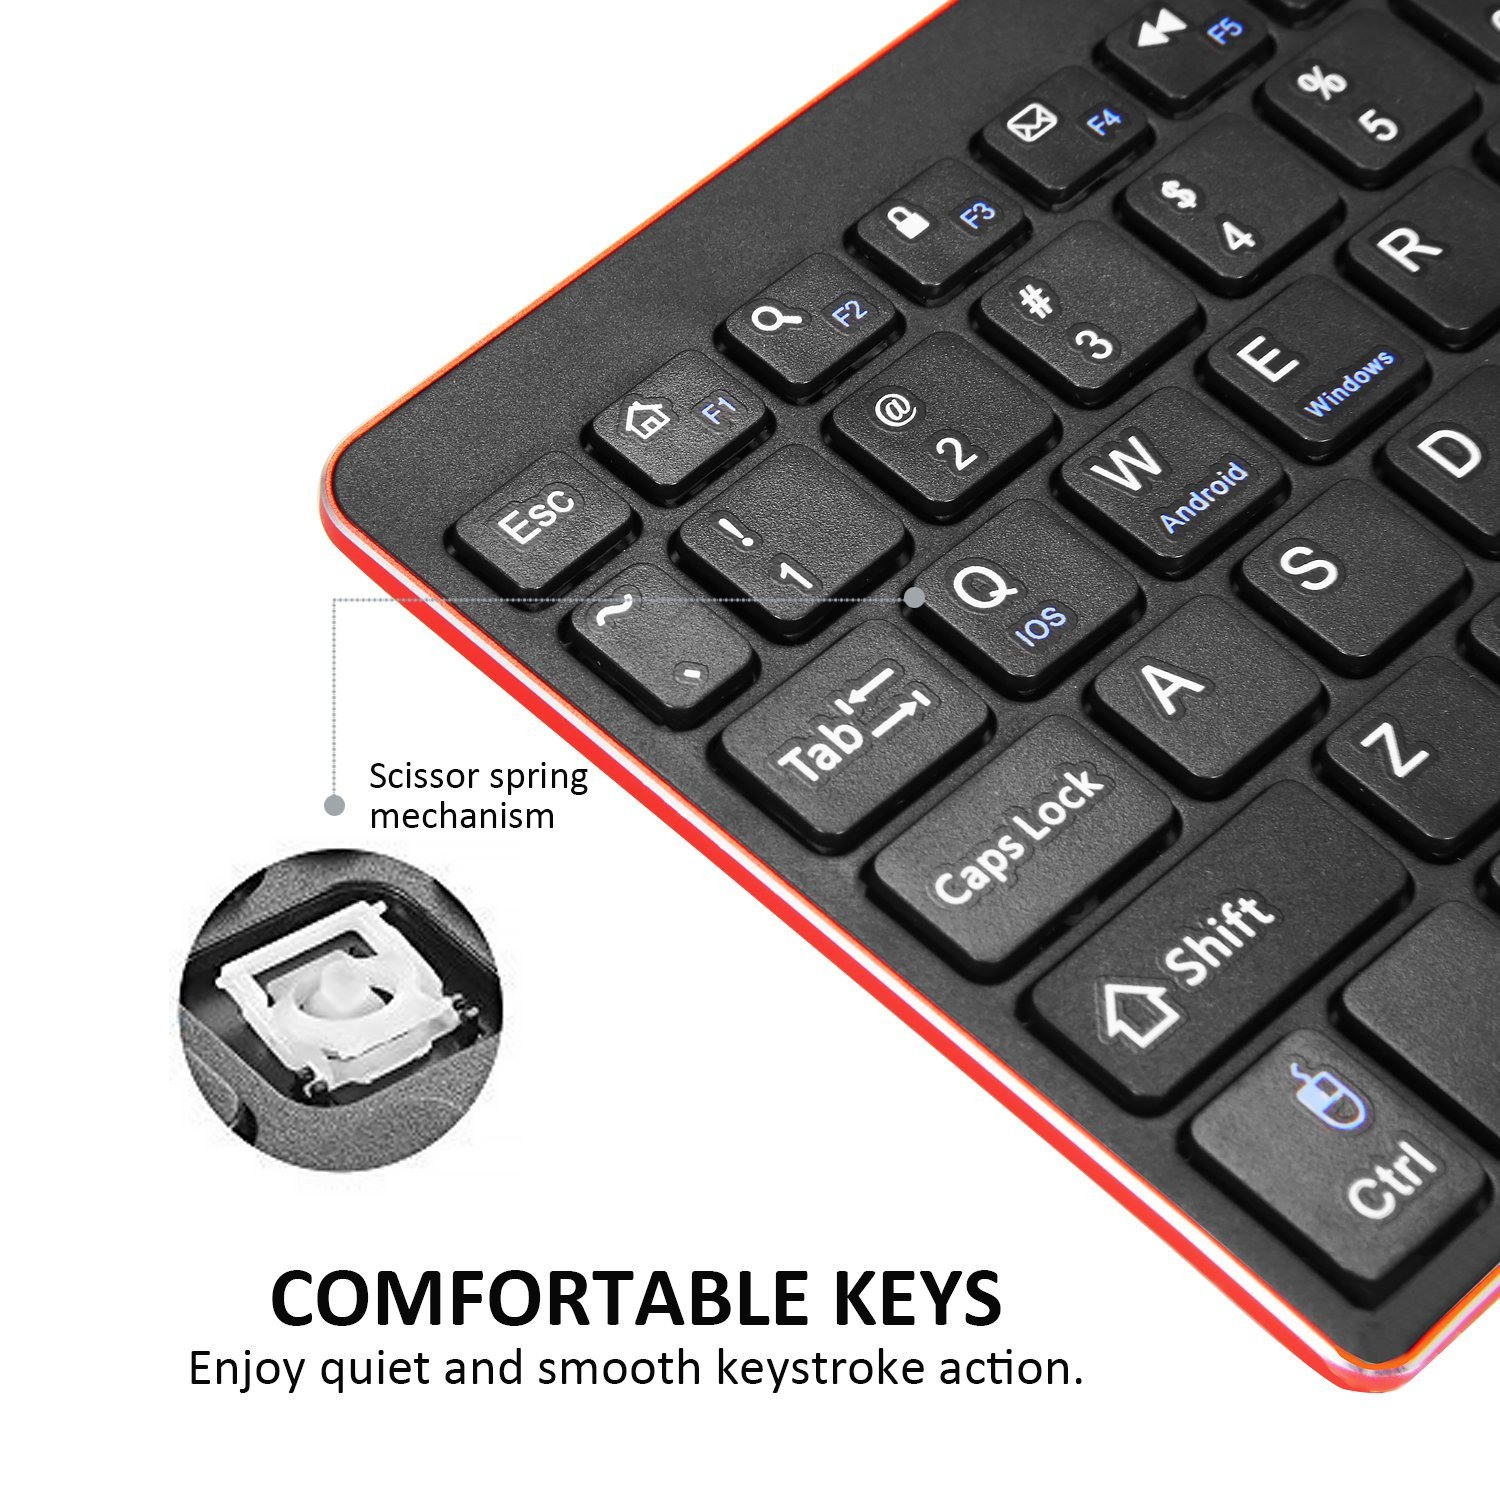 bater/ía no incluida Alitoo Teclado Inal/ámbrico Bluetooth con Touchpad Negro Wireless Teclado Ergon/ómico Ultrafino Portatil Universal Keyboard para PC Android iOS Windows y Ordenador port/átil